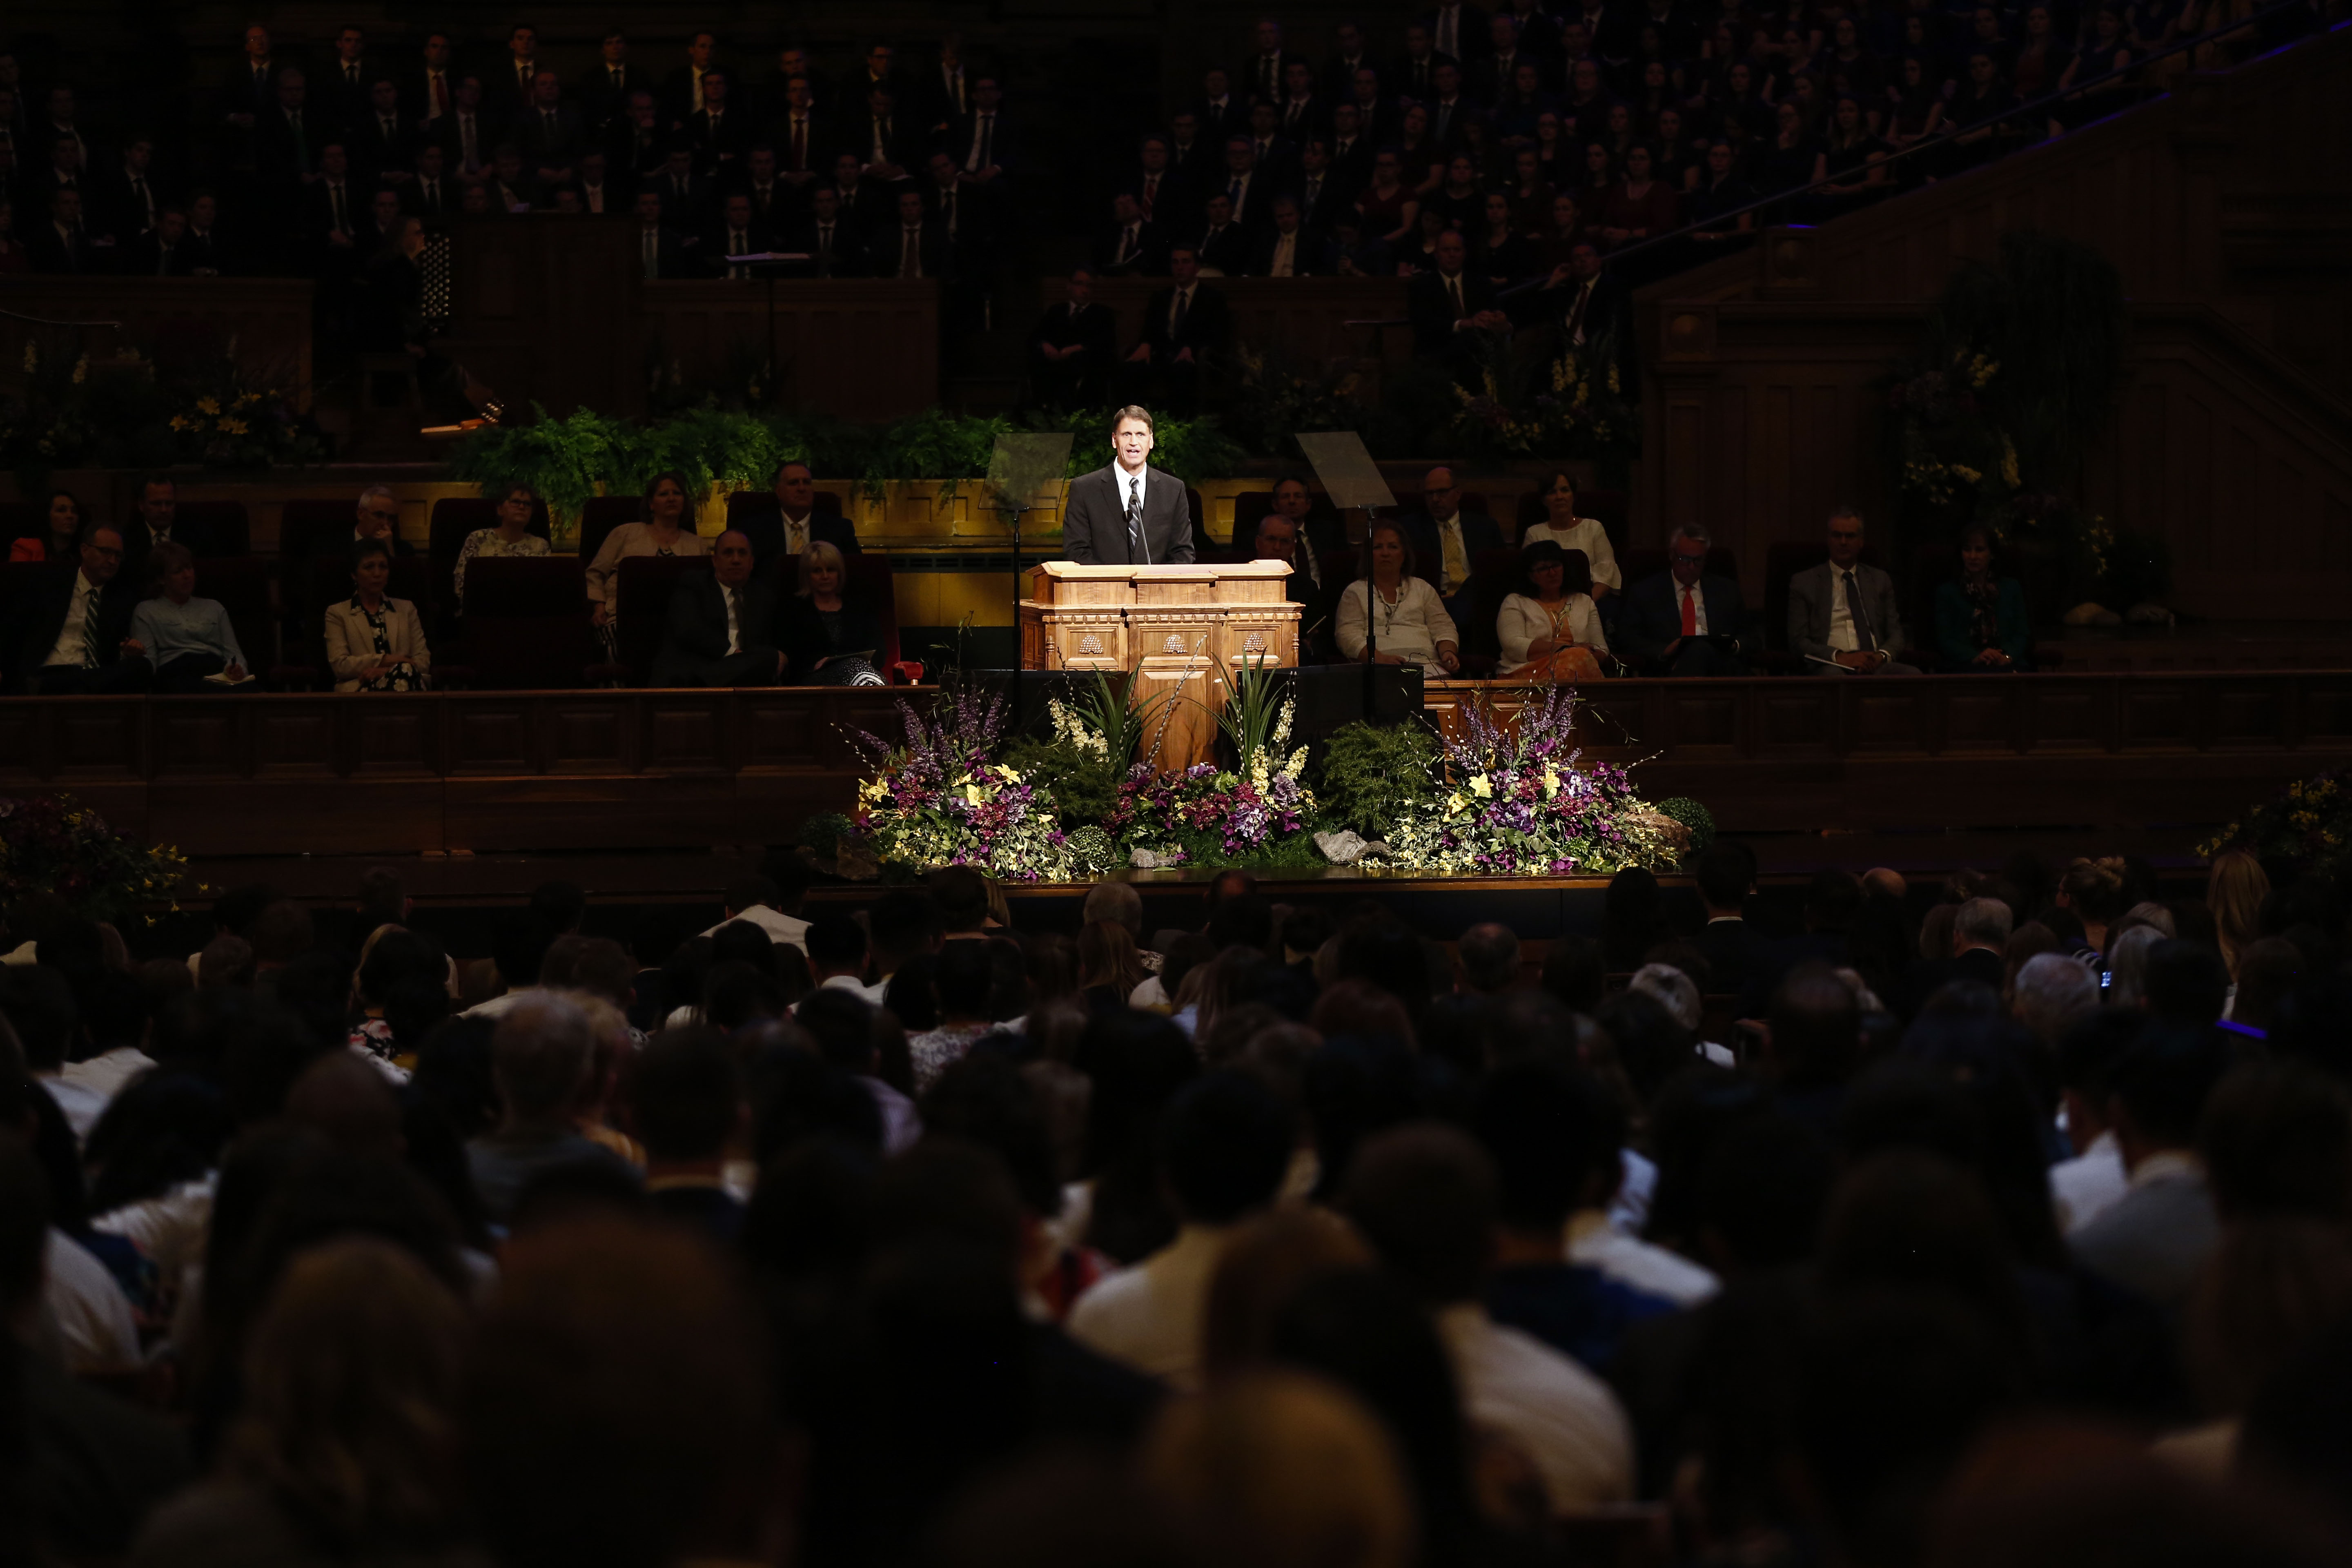 Elder Carl B. Cook speaks about marriage during the Worldwide Devotional for Young Adults at the Salt Lake Tabernacle in Salt Lake City on Sunday, May 5, 2019.